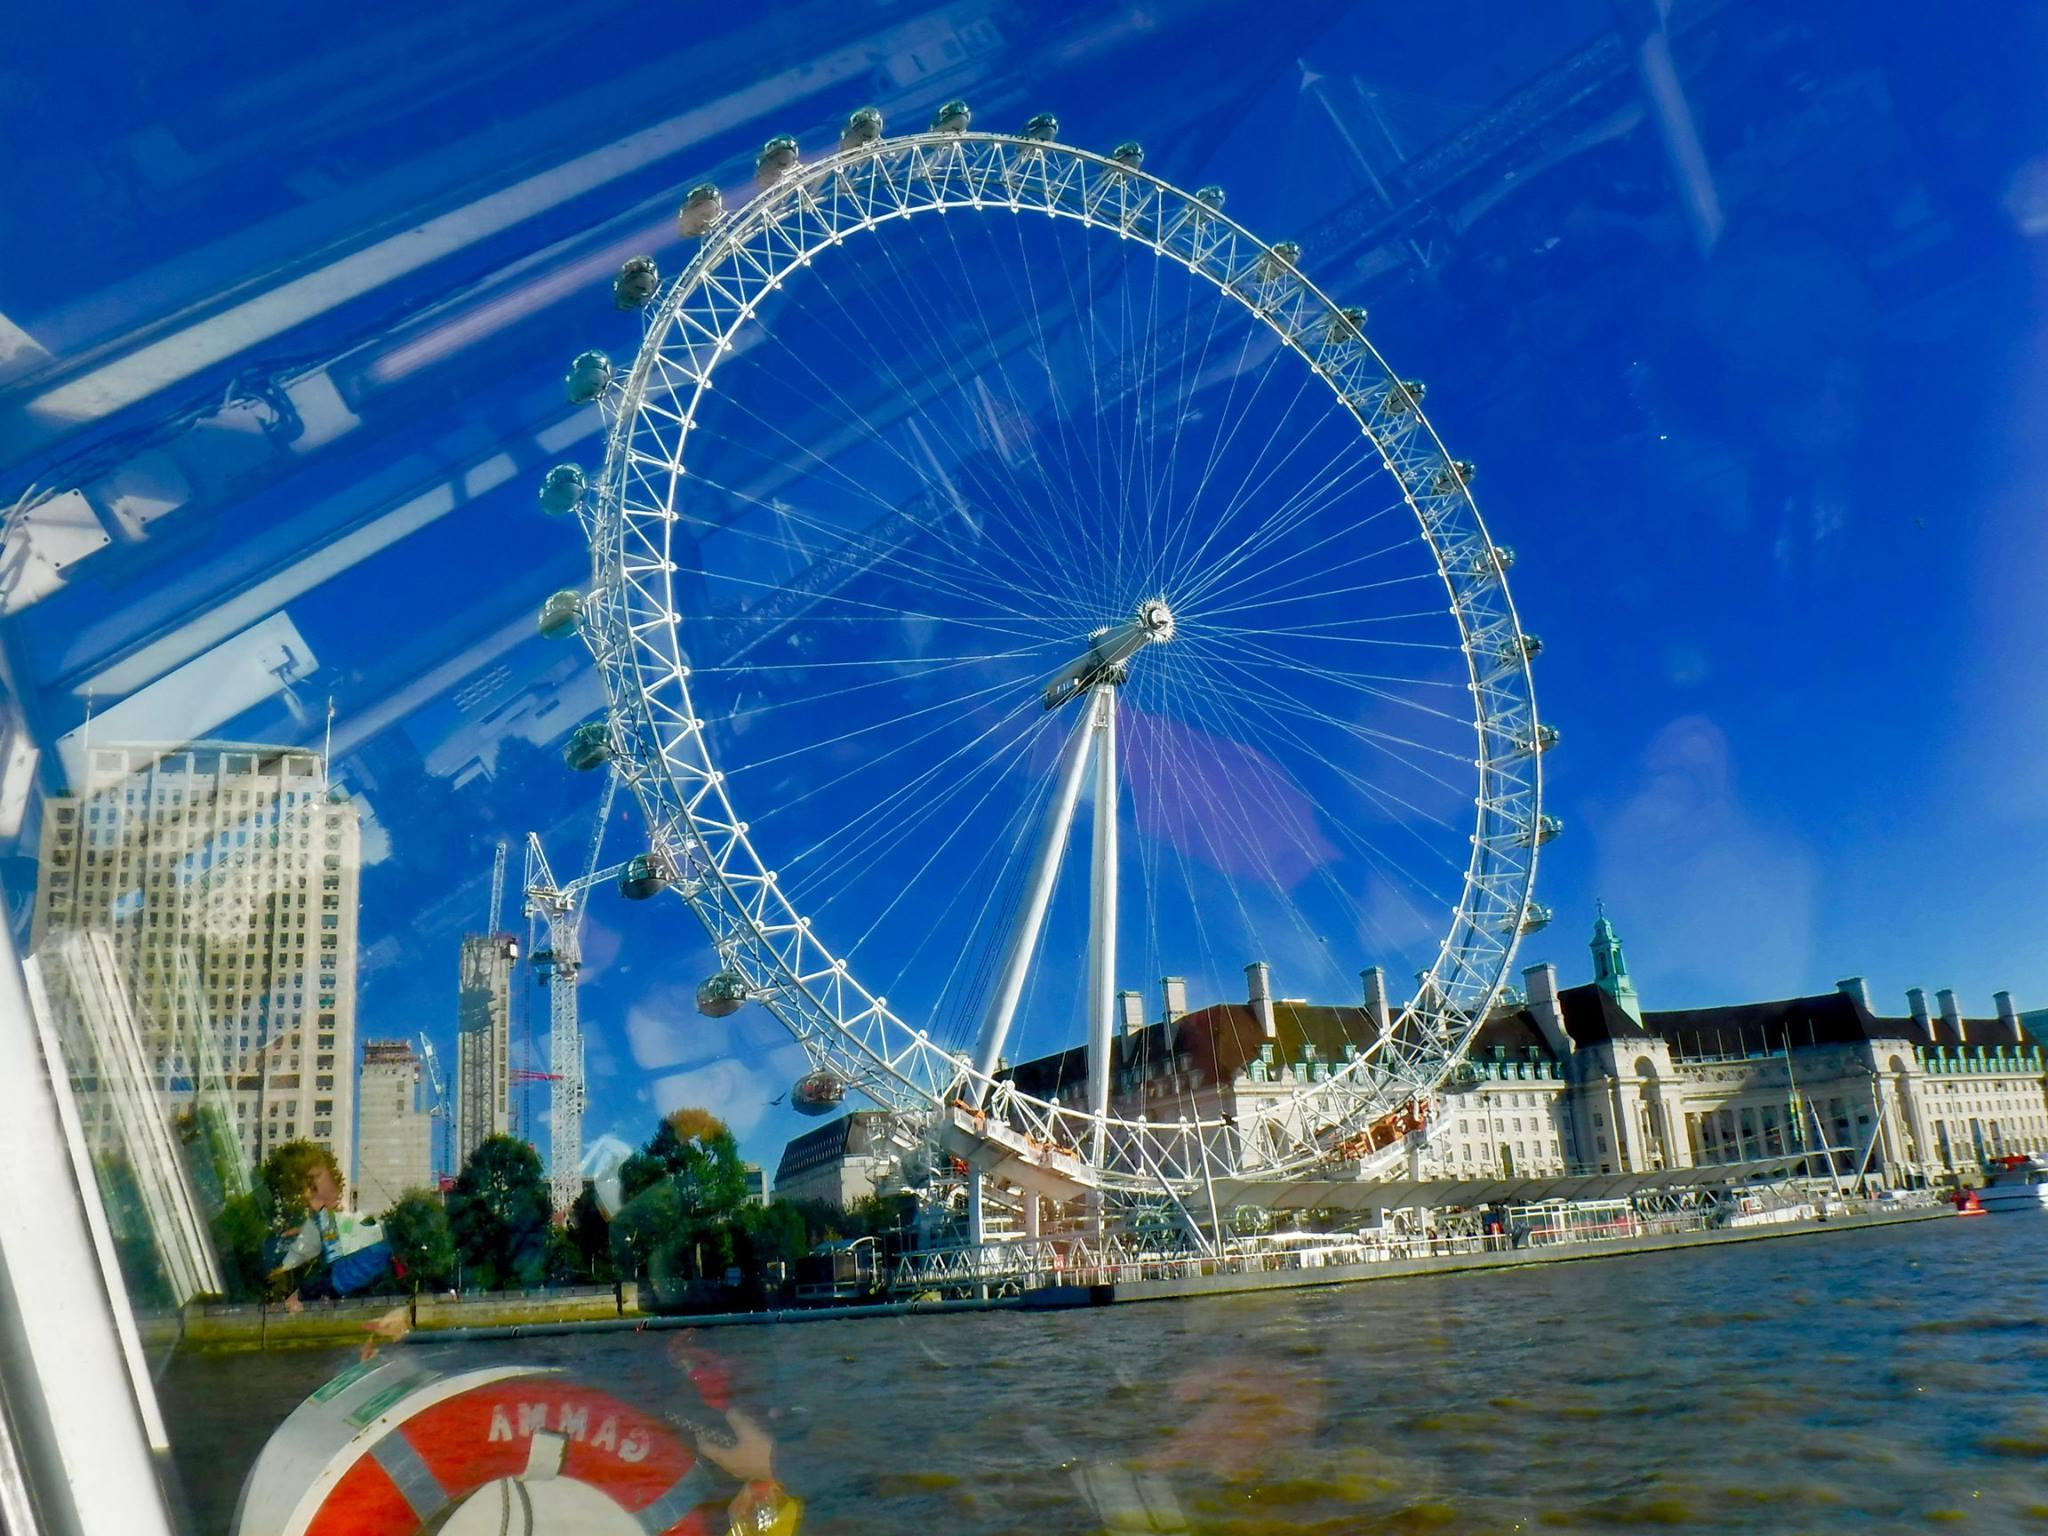 Your view from the top of the London Eye